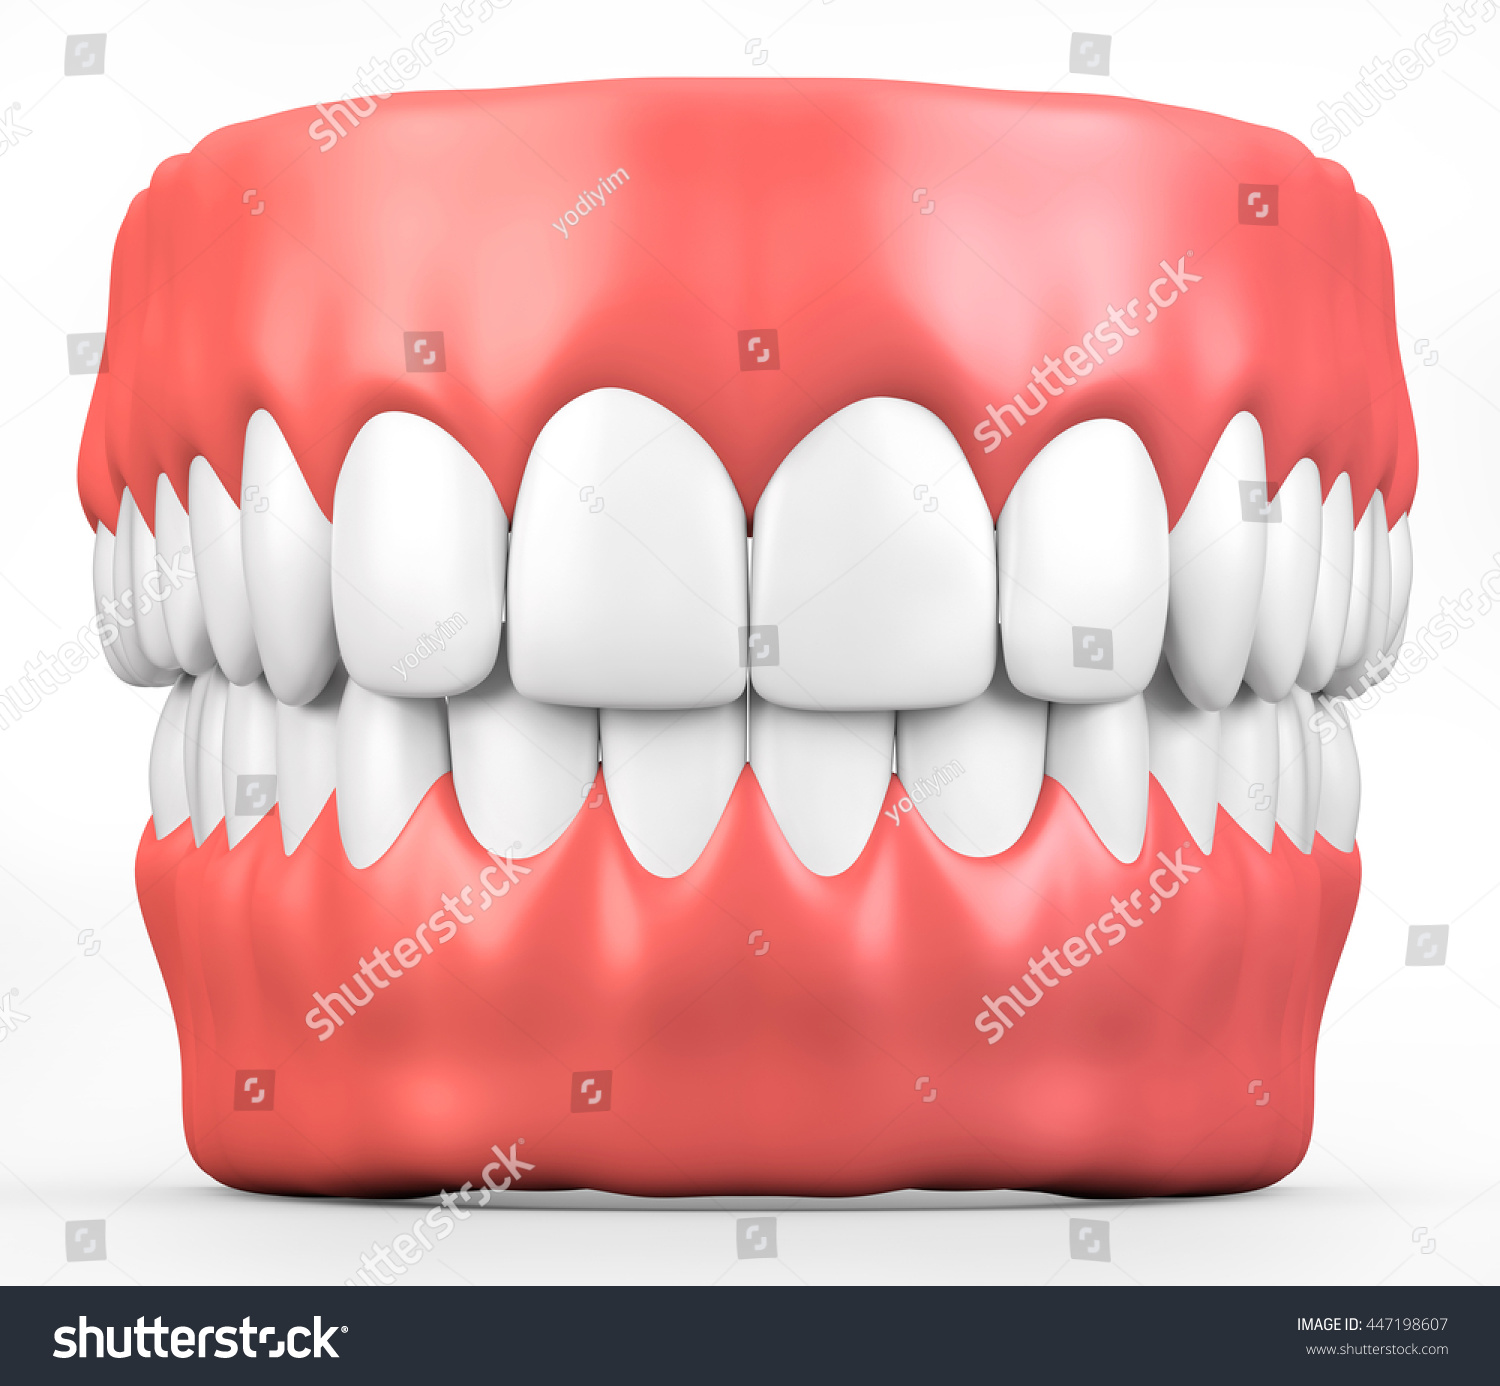 3D illustration teeth and gum model dental concept